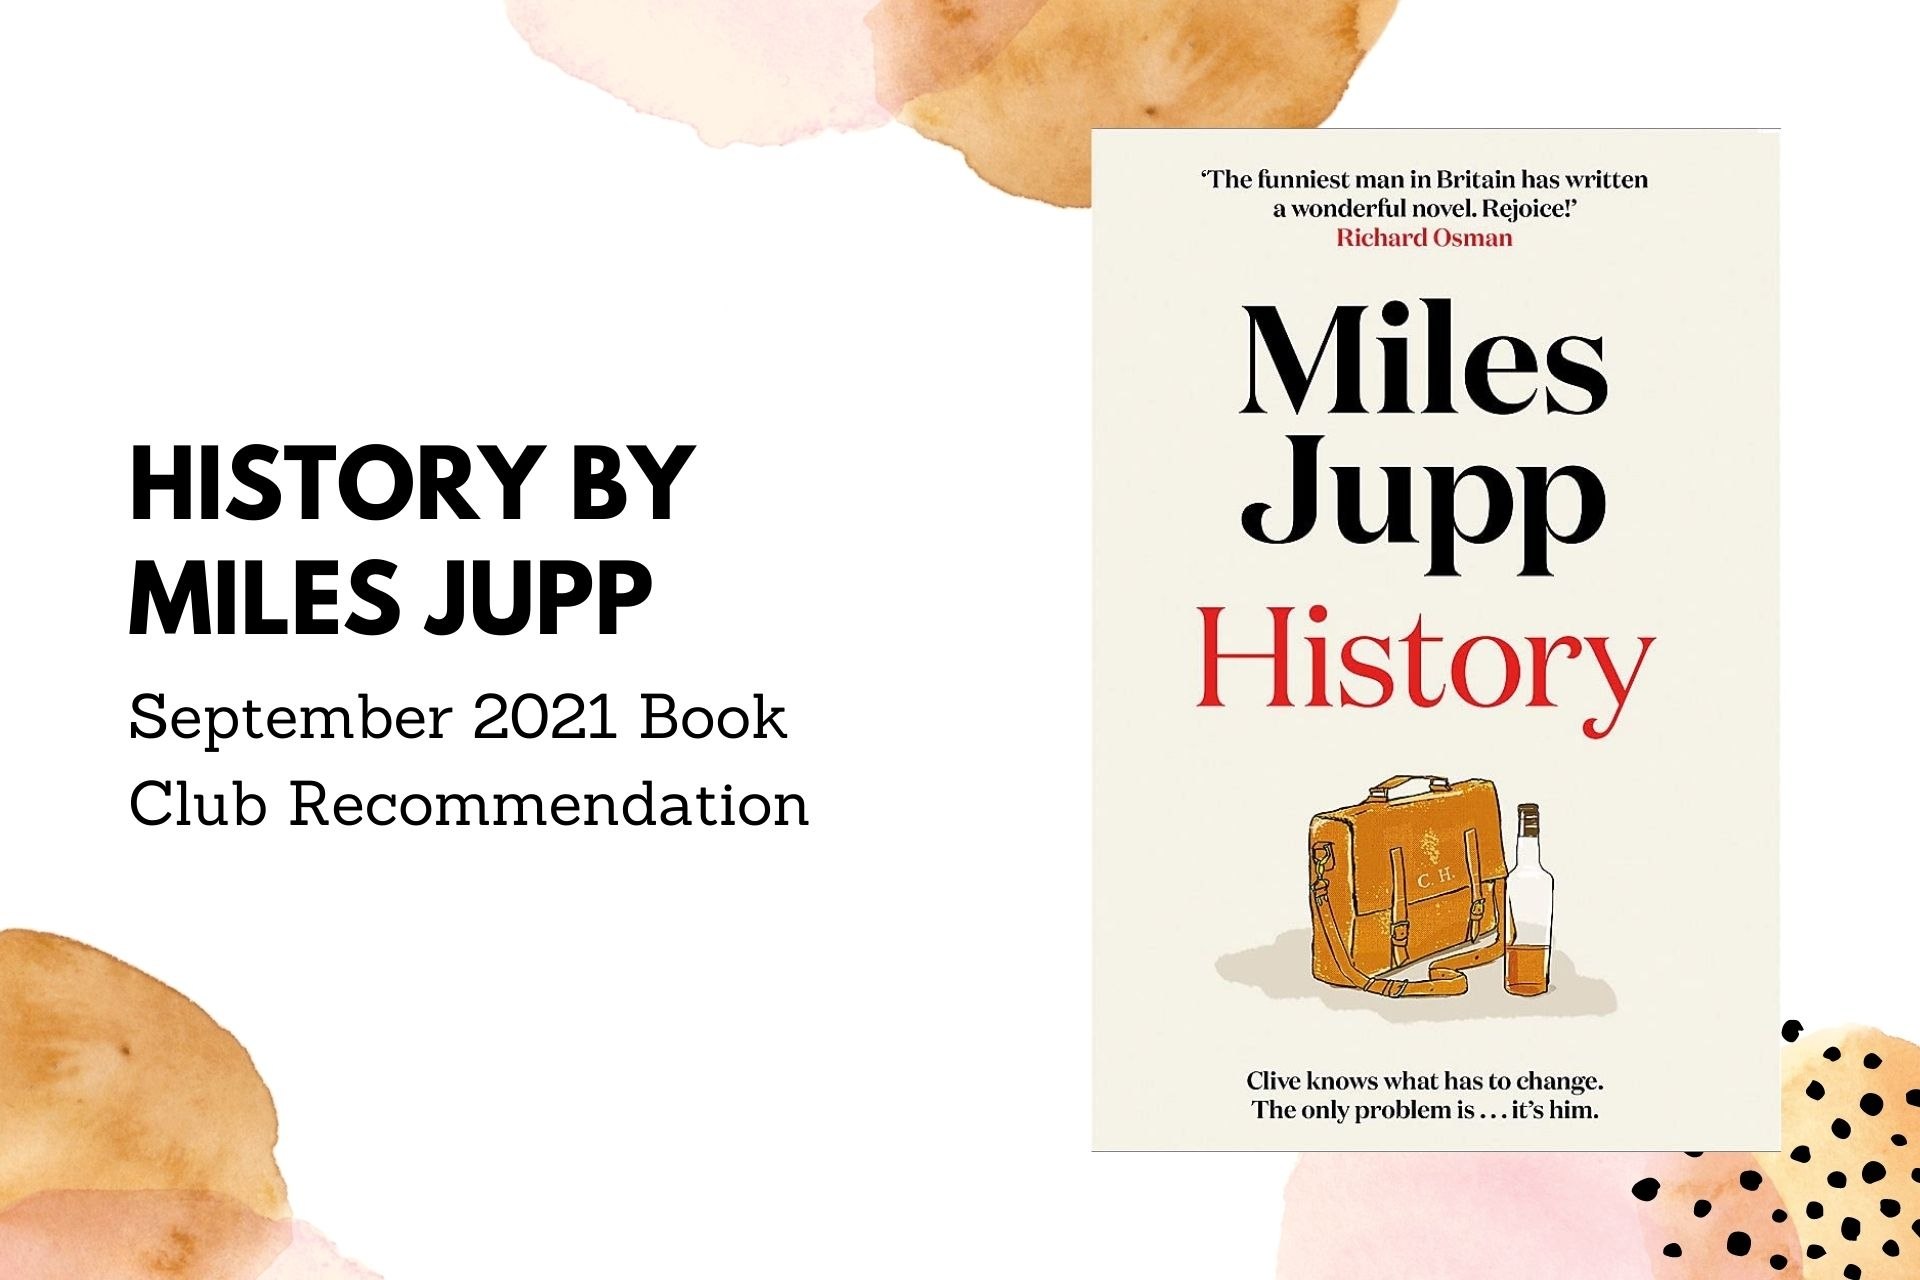 September 2021 Book Club Recommendation: History by Miles Jupp